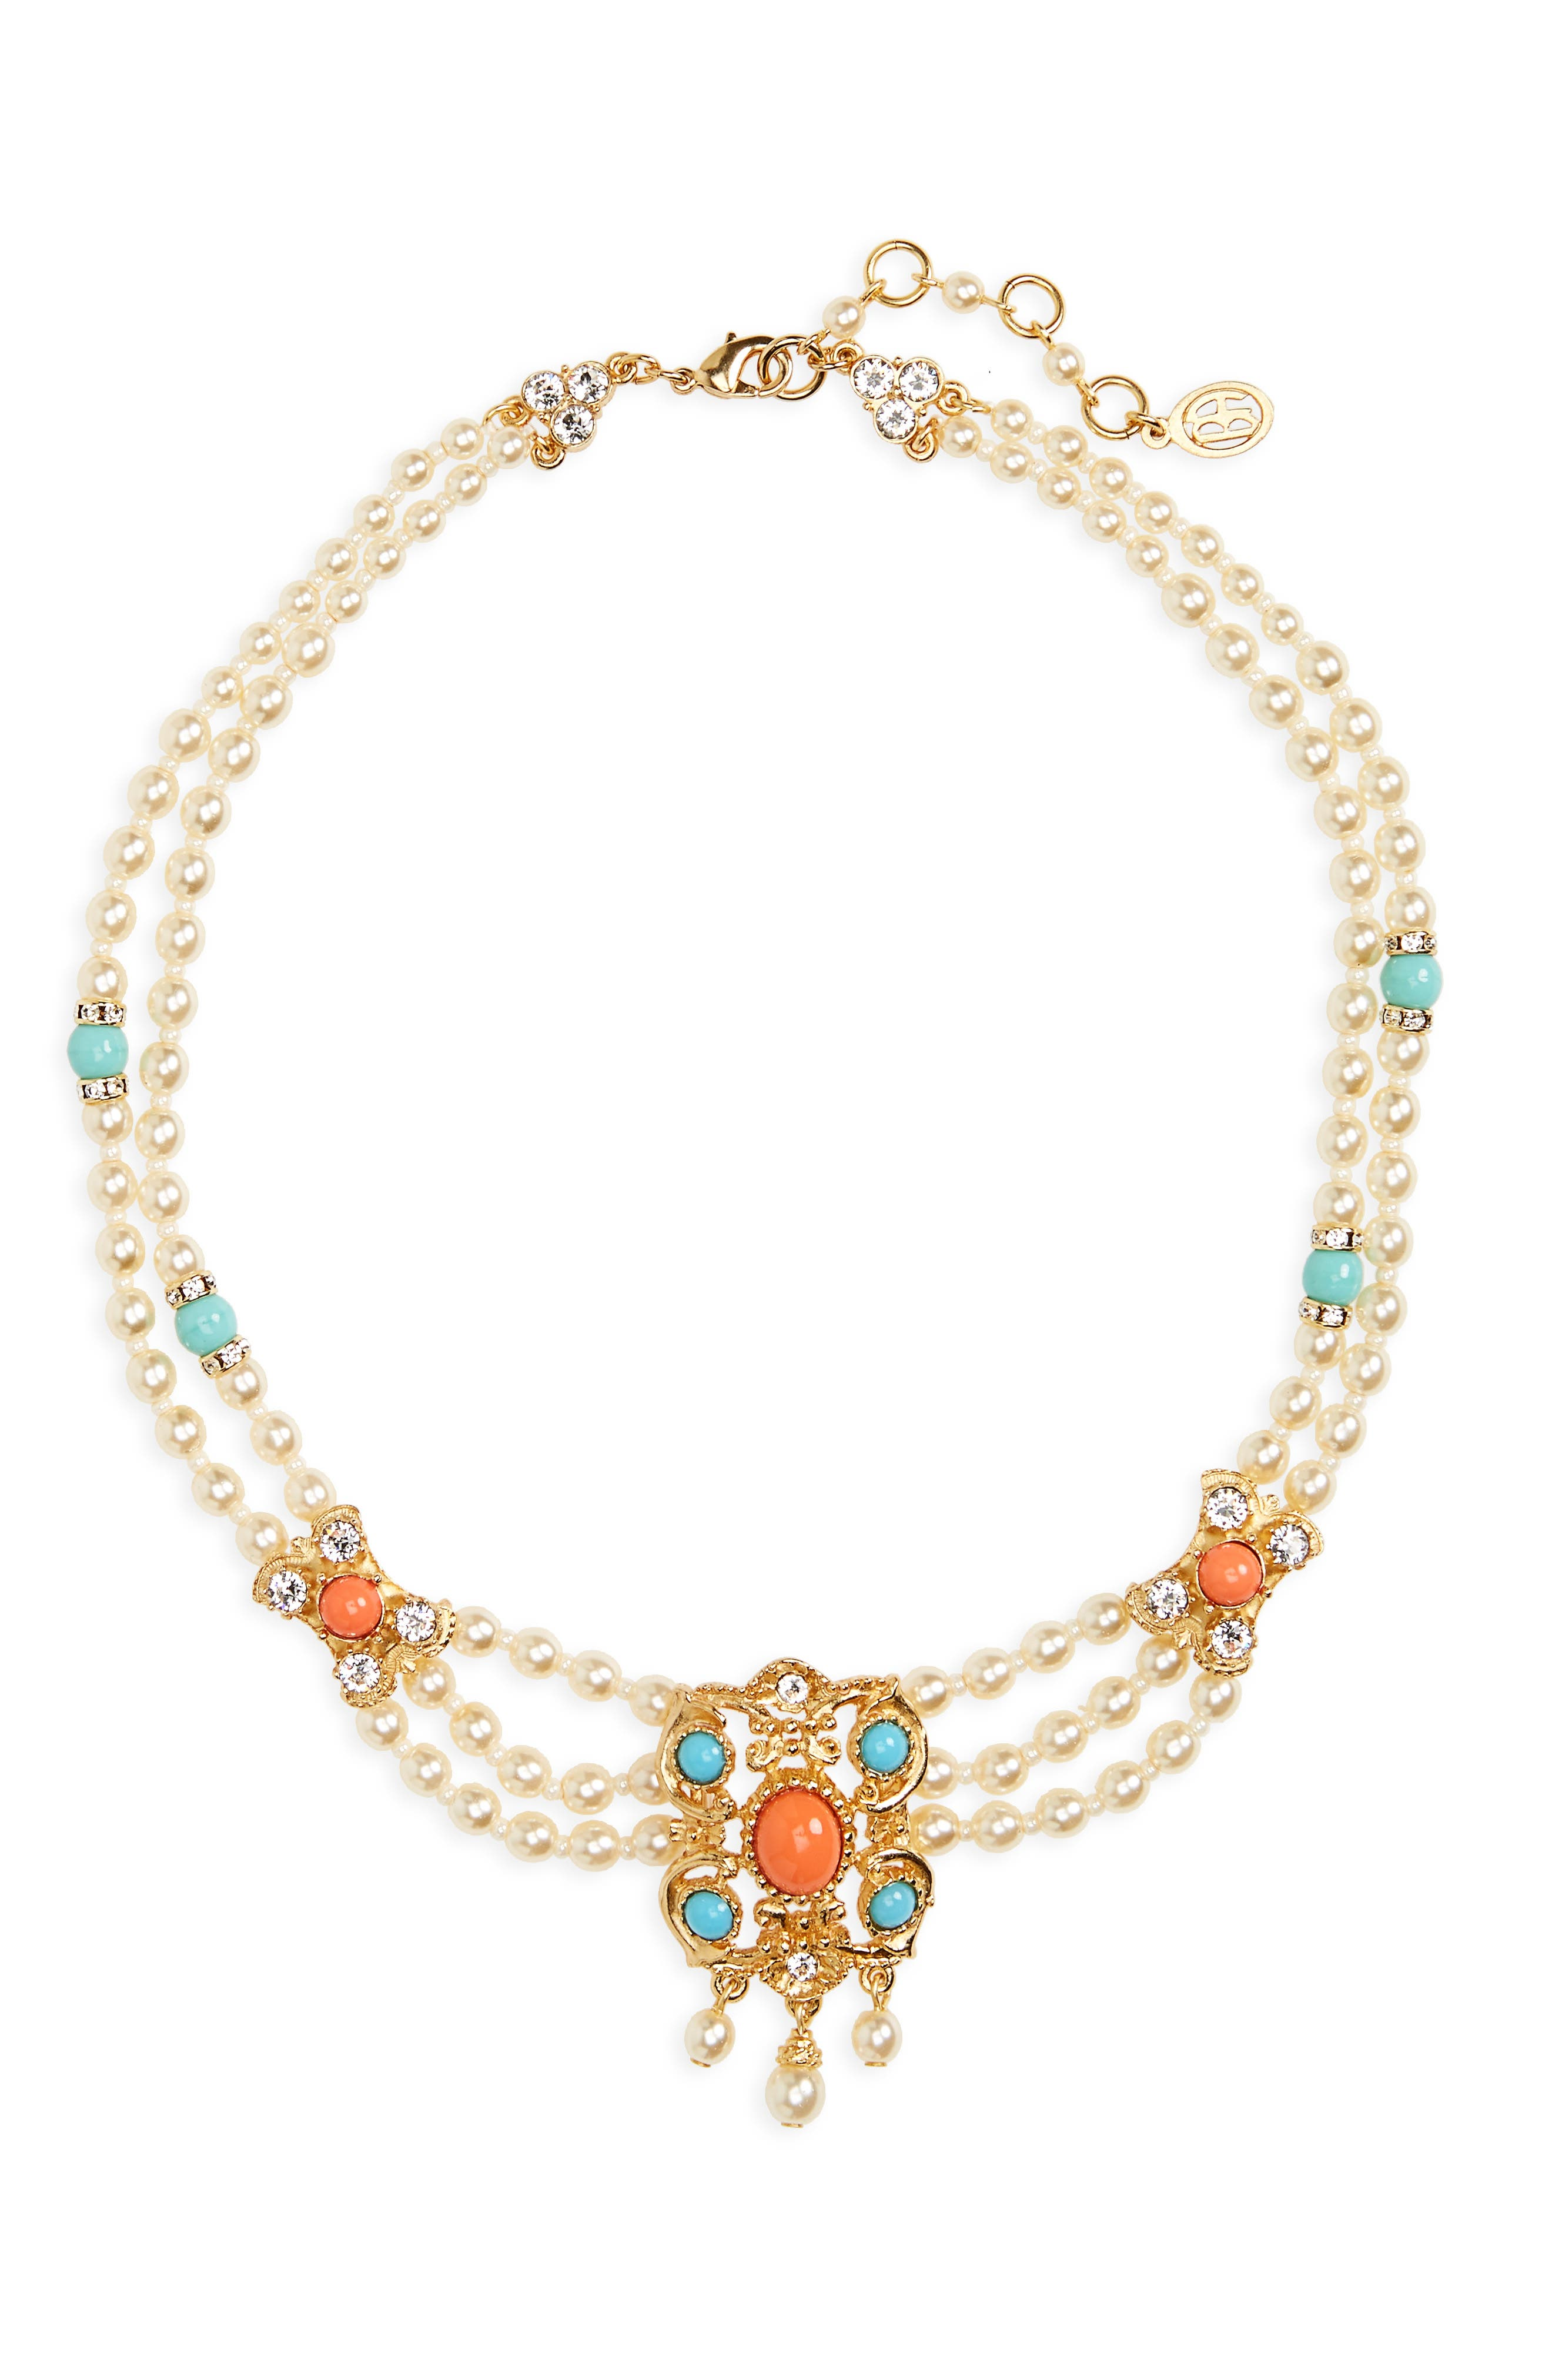 Adriatic Sea Imitation Pearl Drop Necklace,                             Main thumbnail 1, color,                             100